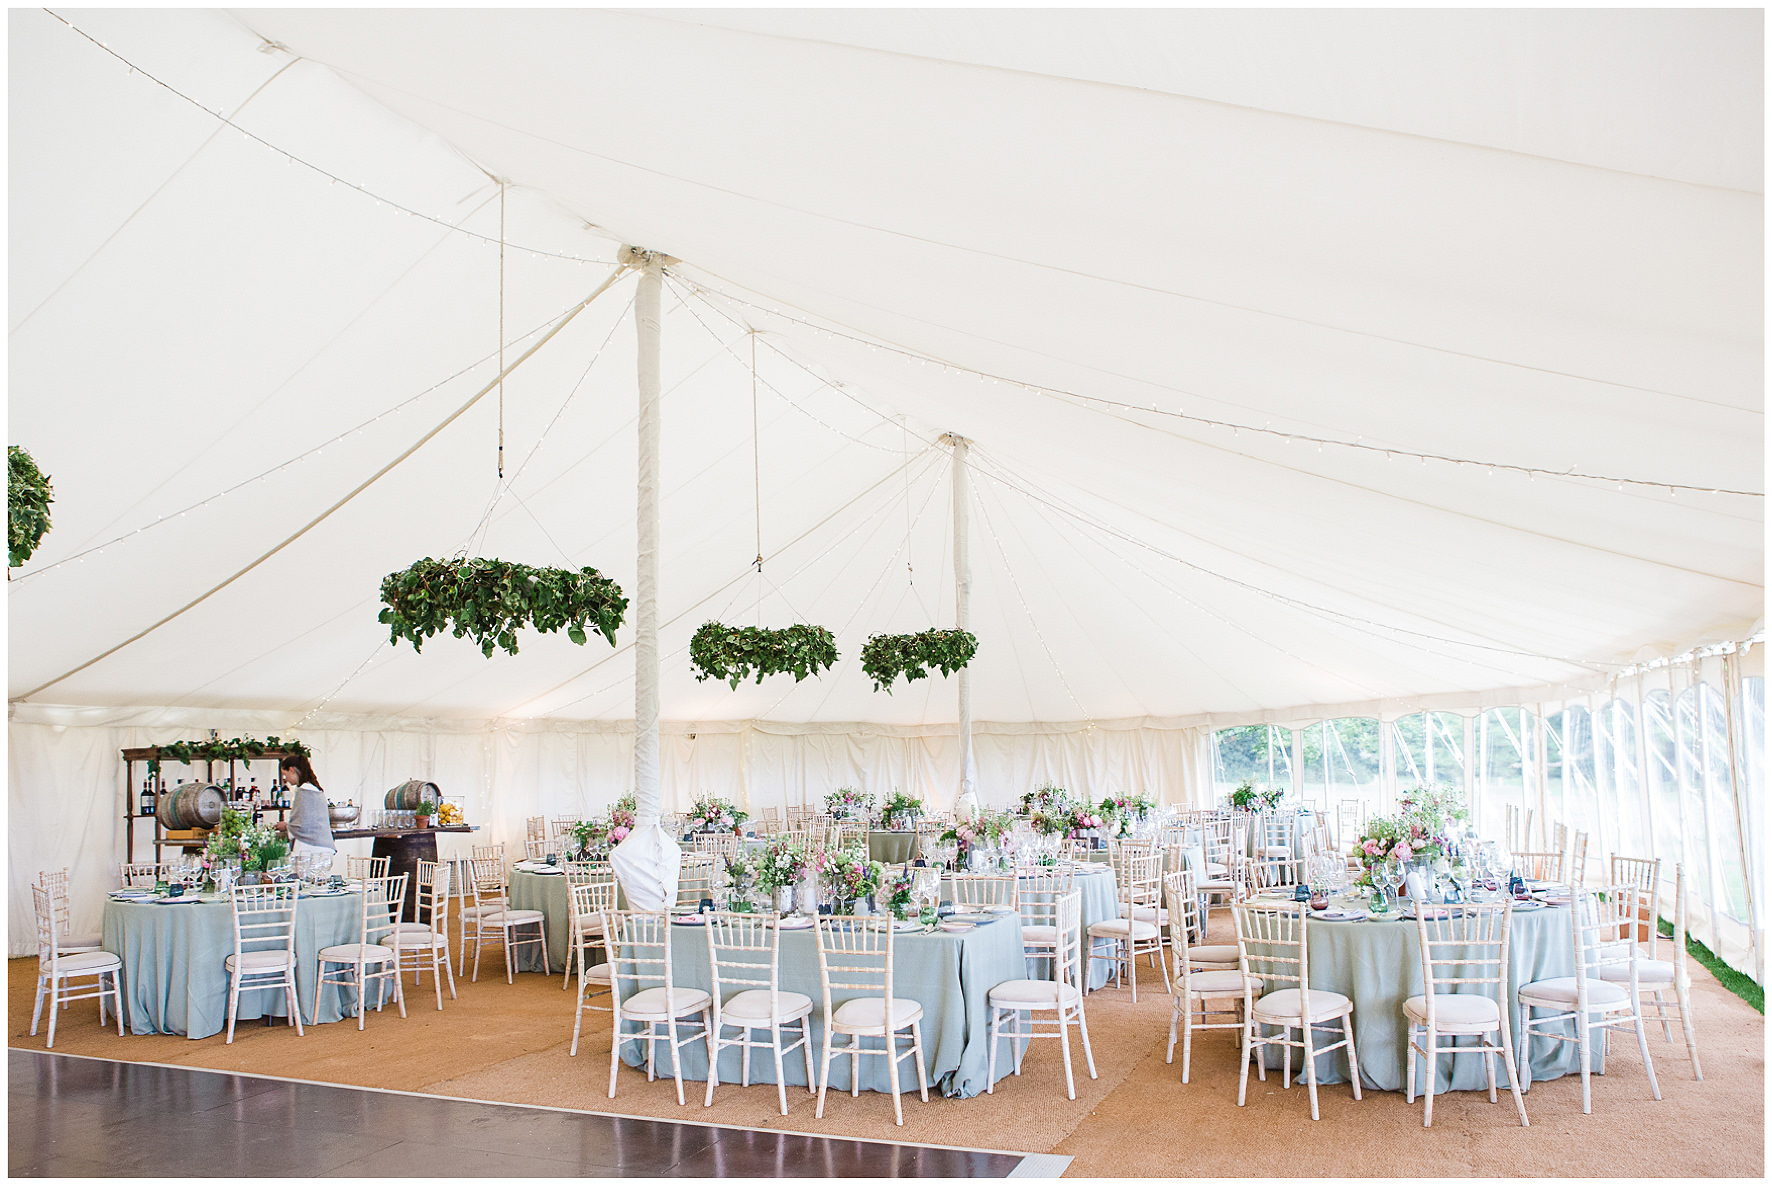 Marquee wedding interior, Wigwam weddings